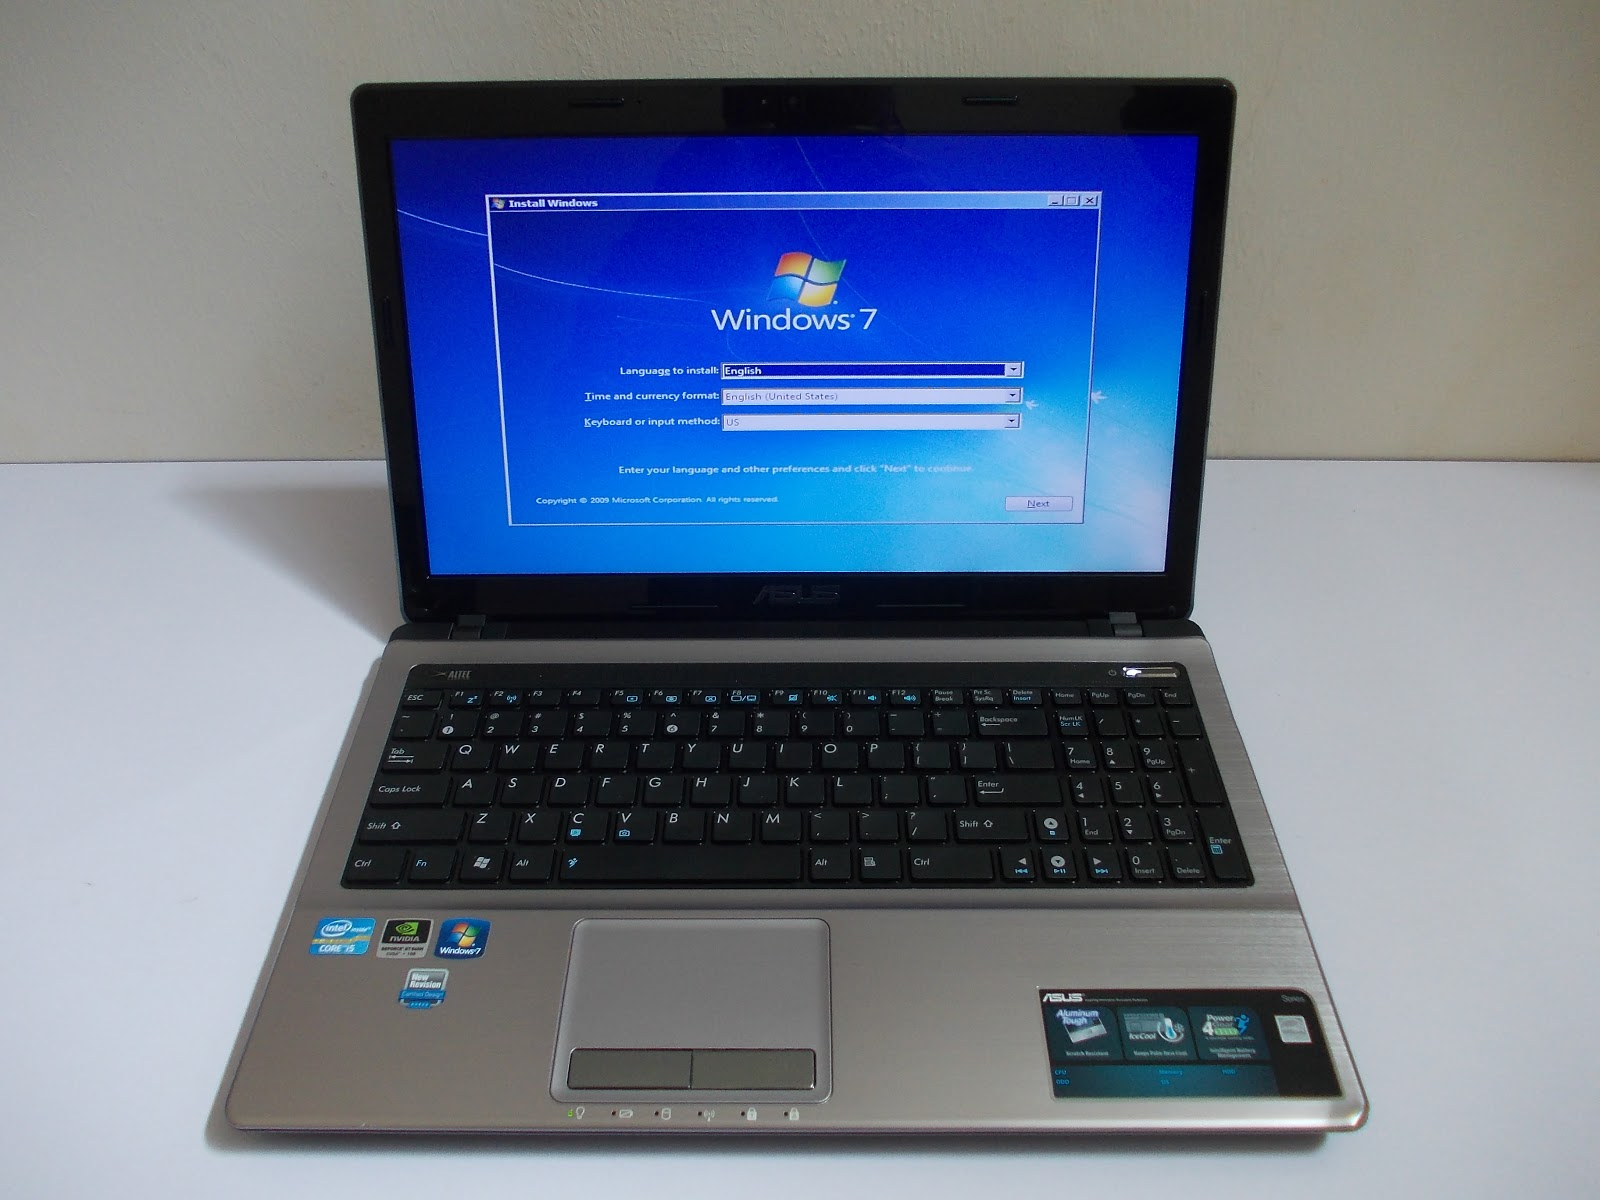 Three A Tech Computer Sales And Services Used Laptop Asus A53s Core Ram Ddr3 1gb Warranty Expired May 2013 Condition Tiptop 95 Like New Spec Intel I5 2410m 230 Ghz 3m Cacheturbo Up To 29ghz 4 Gb 500 Sata